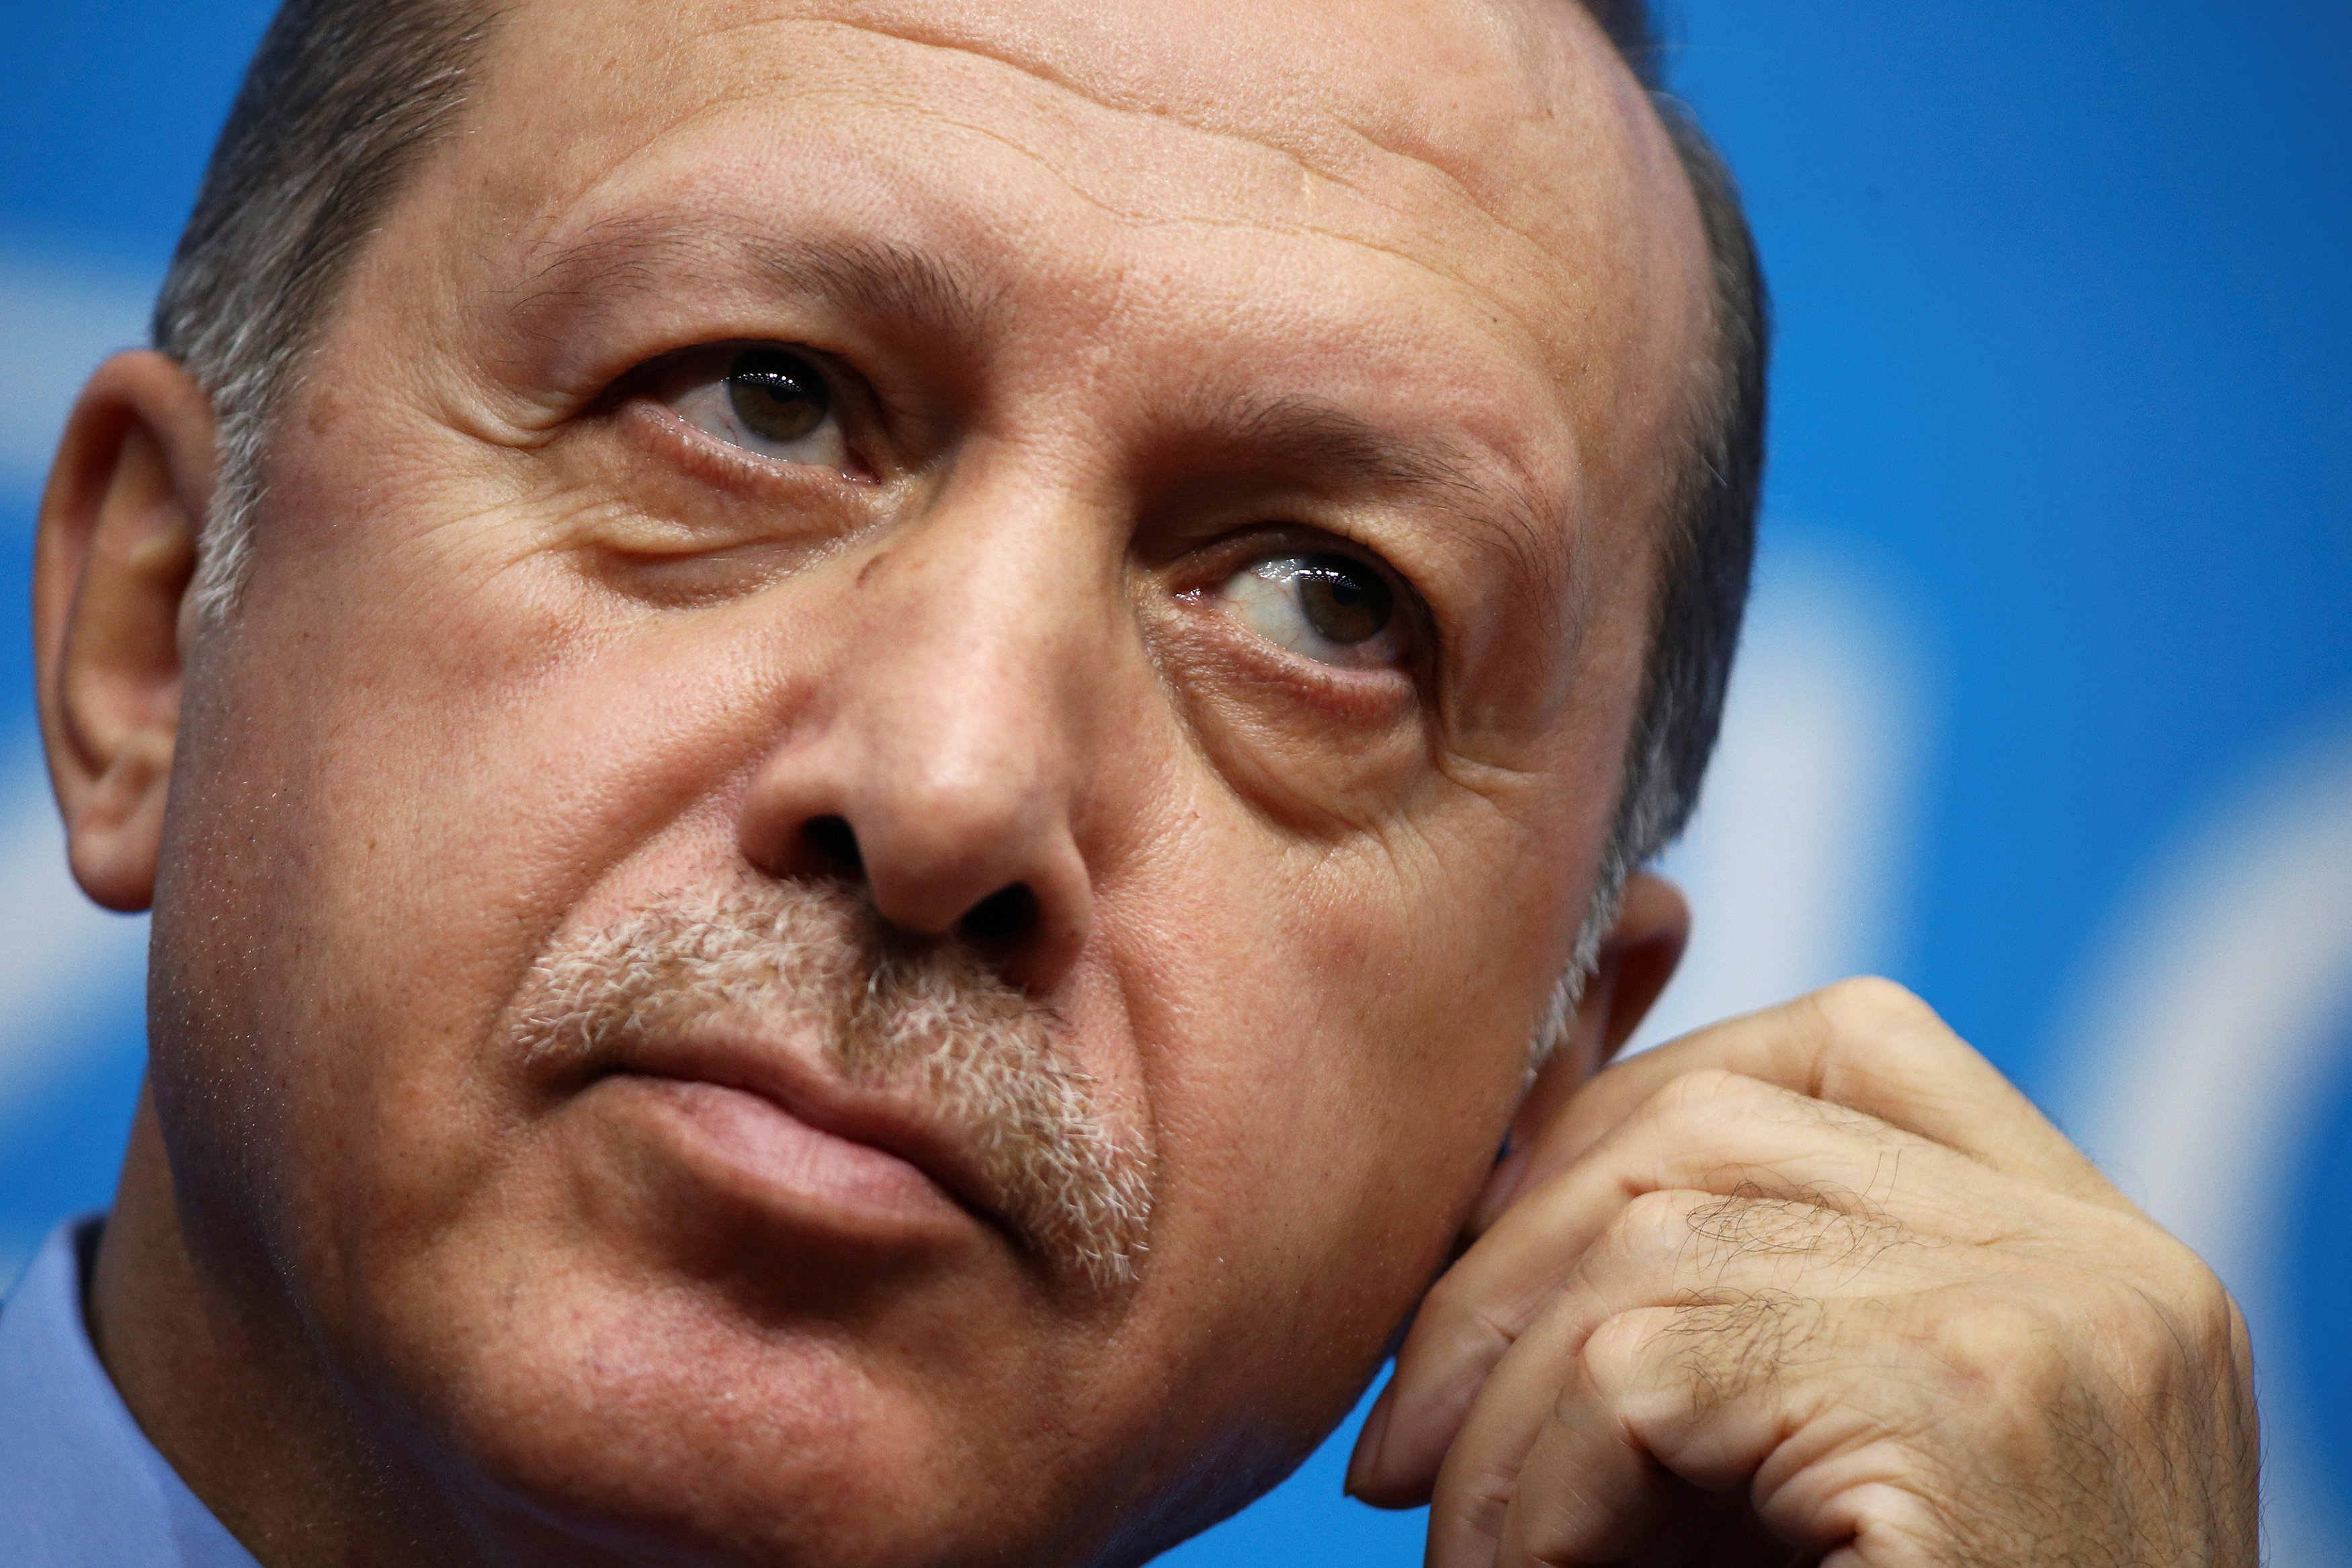 Turkey's President Tayyip Erdogan adjusts earphones during a news conference in Hangzhou, Zhejiang Province, China,